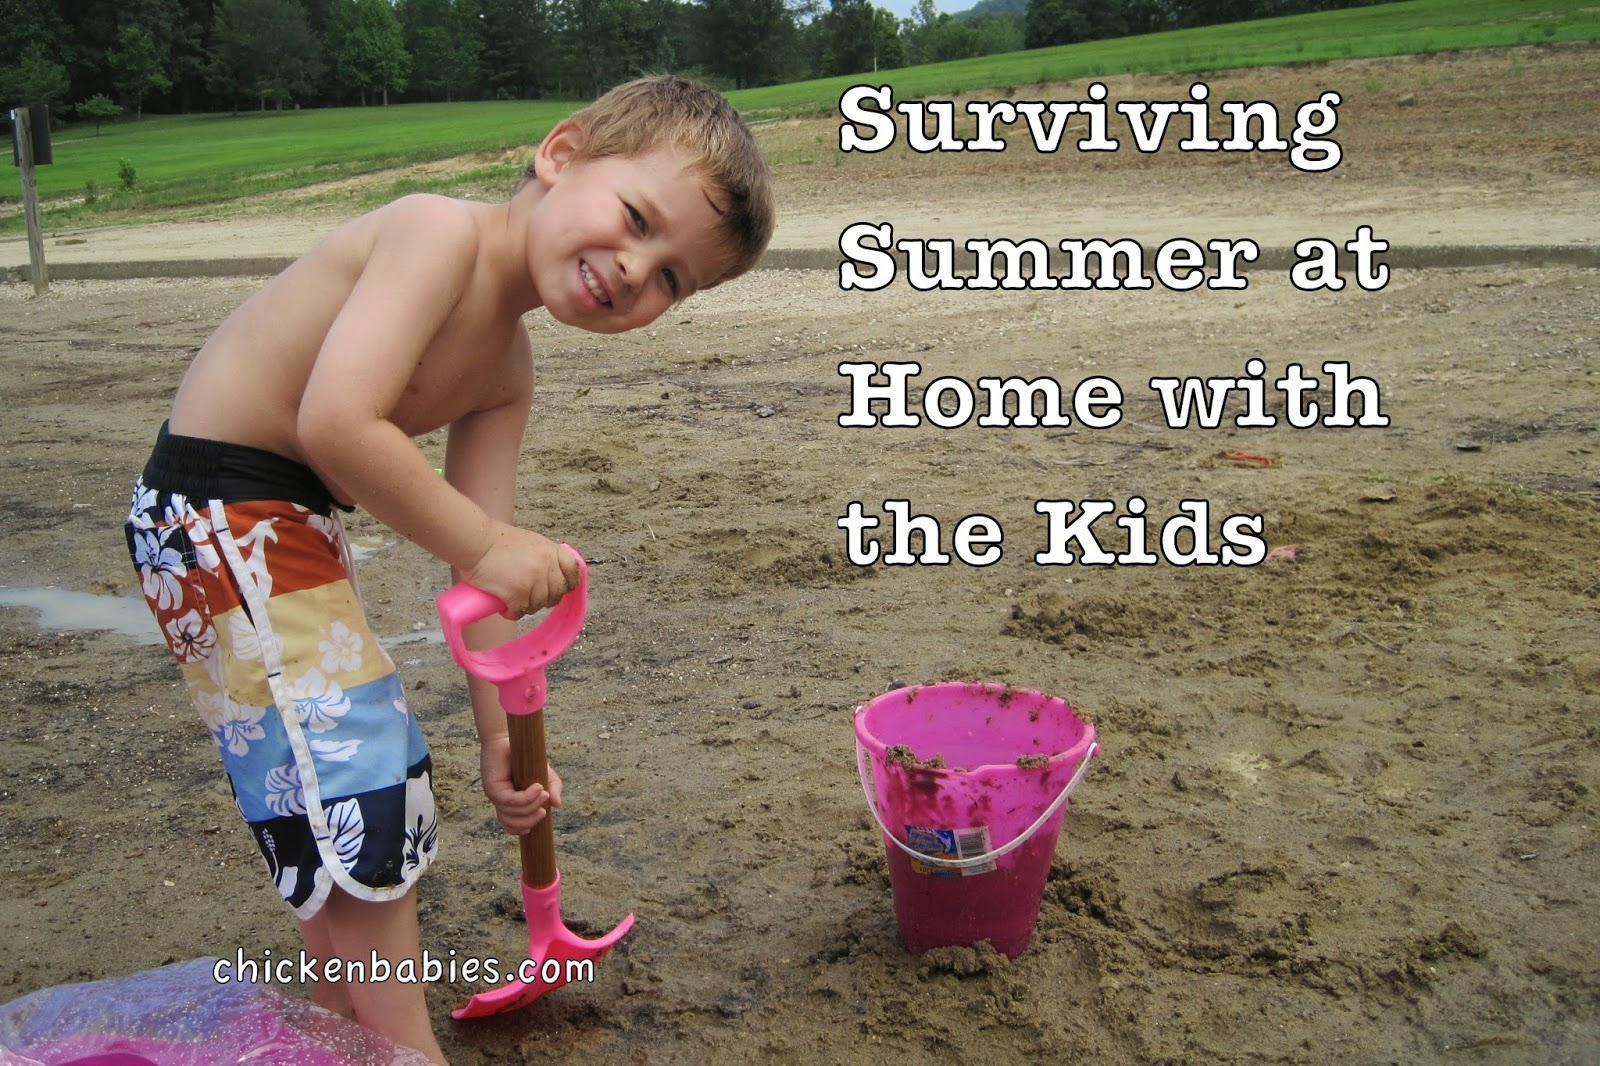 Great tips to help make long summer days at home with the kids easier!